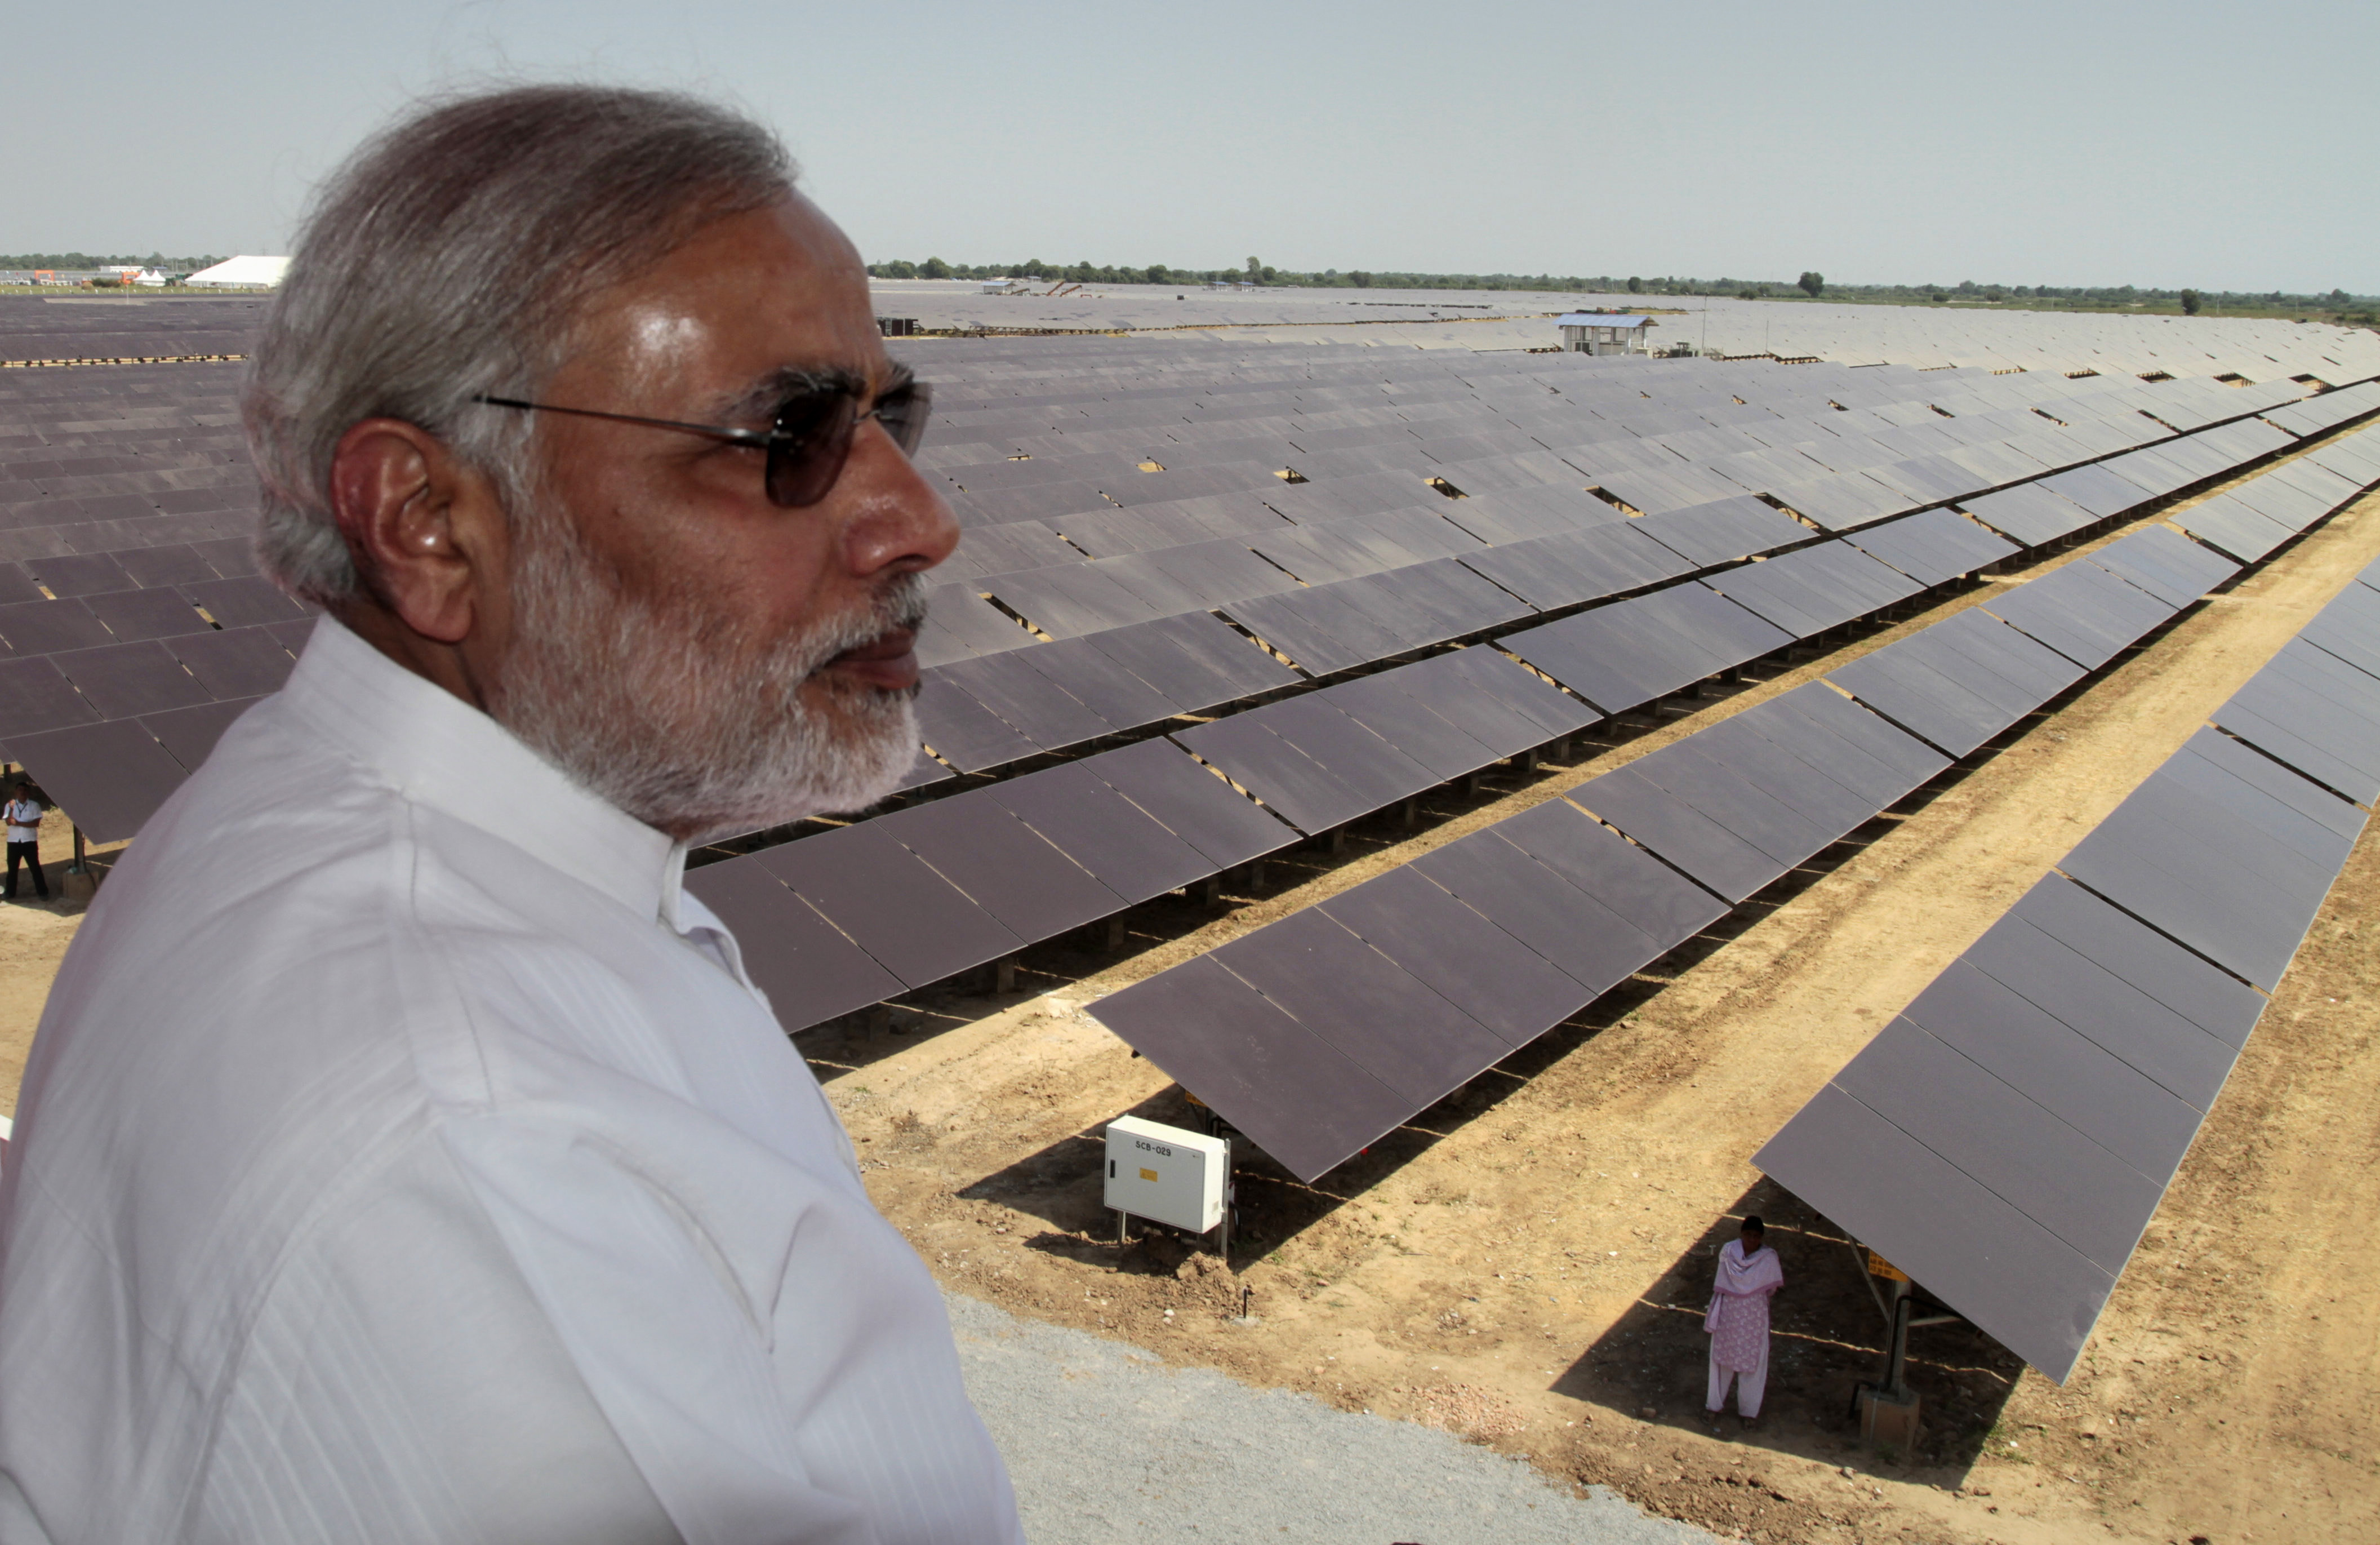 Narendra Modi overlooks the panels at a solar energy farm at Gunthawada in Gujarat state in 2011.